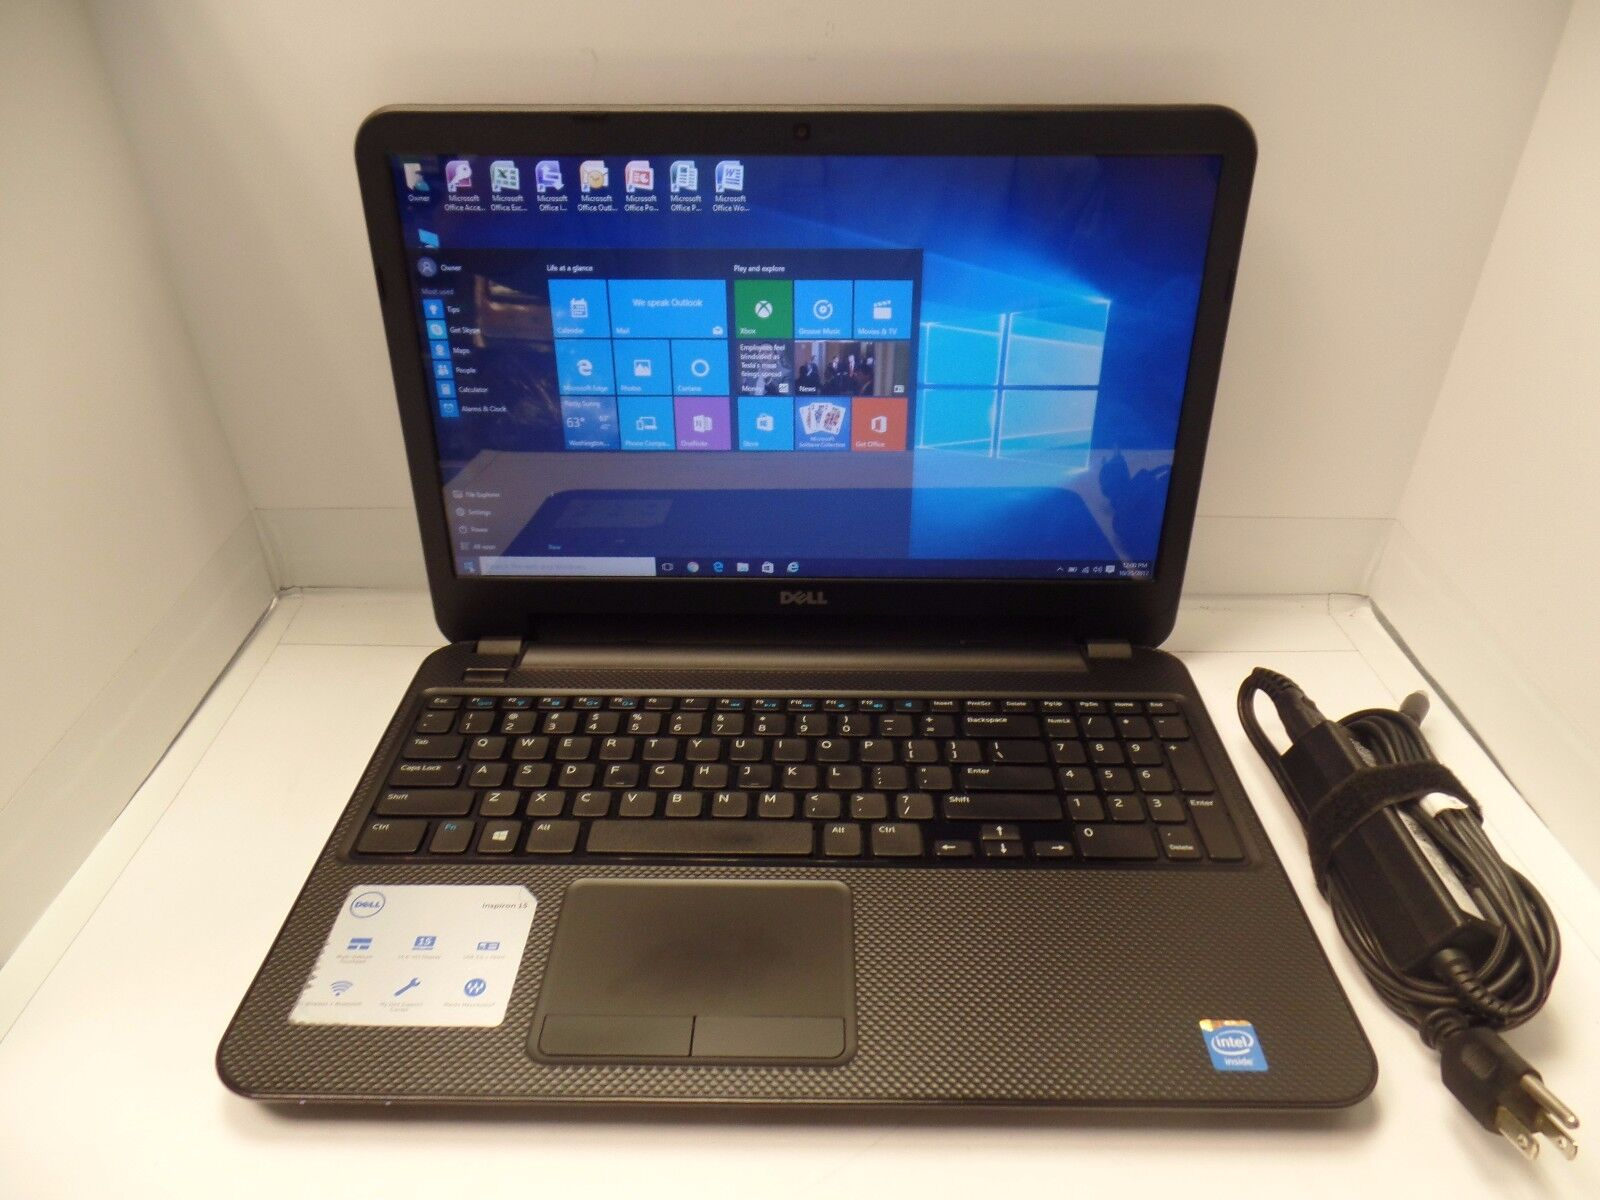 Dell Inspiron 15 3537 Intel Celeron 1.40GHz 8GB 320GB Laptop Win10 Office 2007